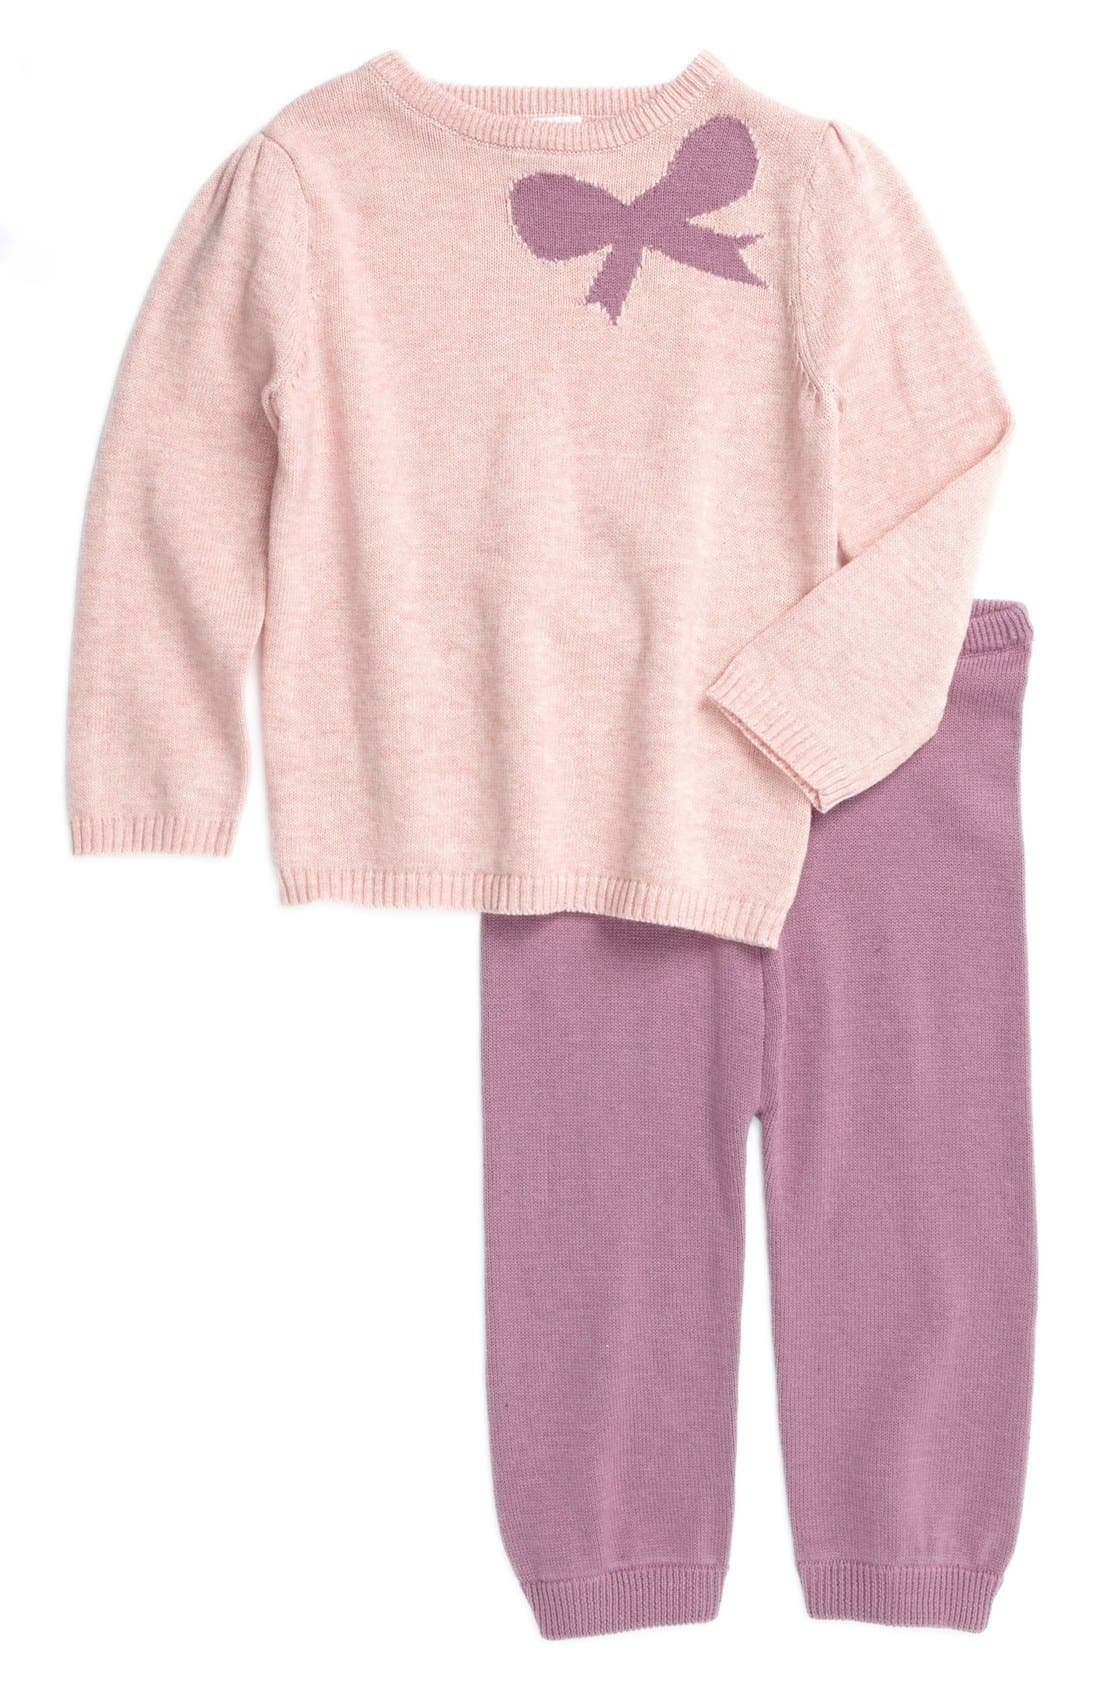 Alternate Image 1 Selected - egg by susan lazar Sweater & Pants (Baby Girls)